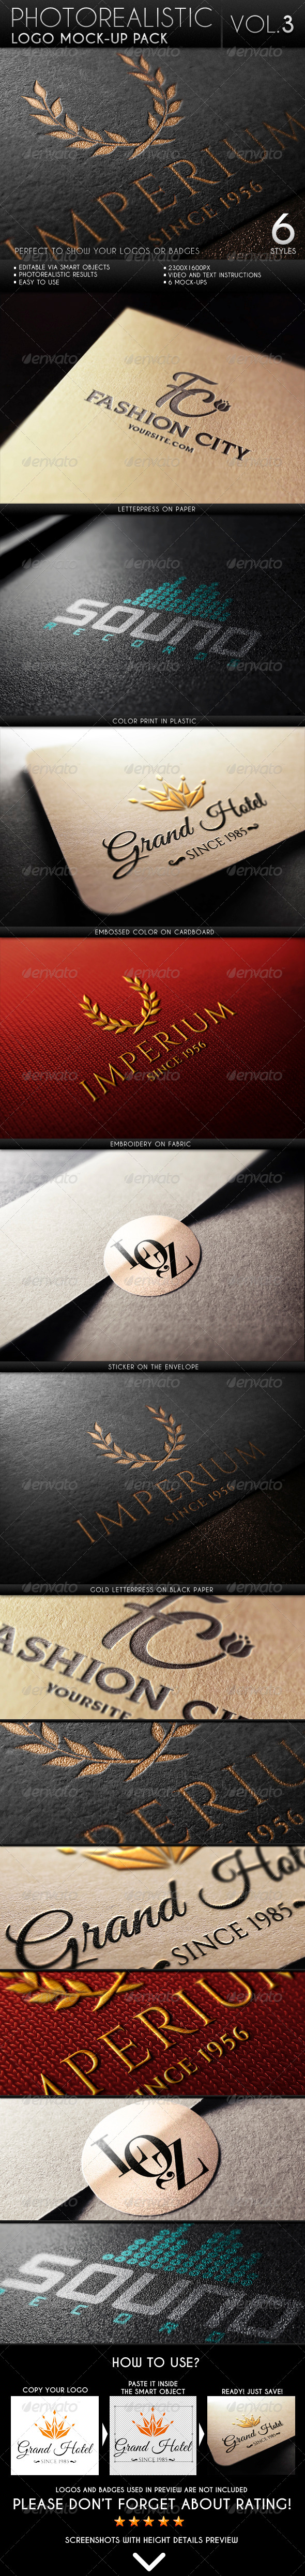 Photorealistic Logo Mock-Up Pack Vol.3 - Logo Product Mock-Ups